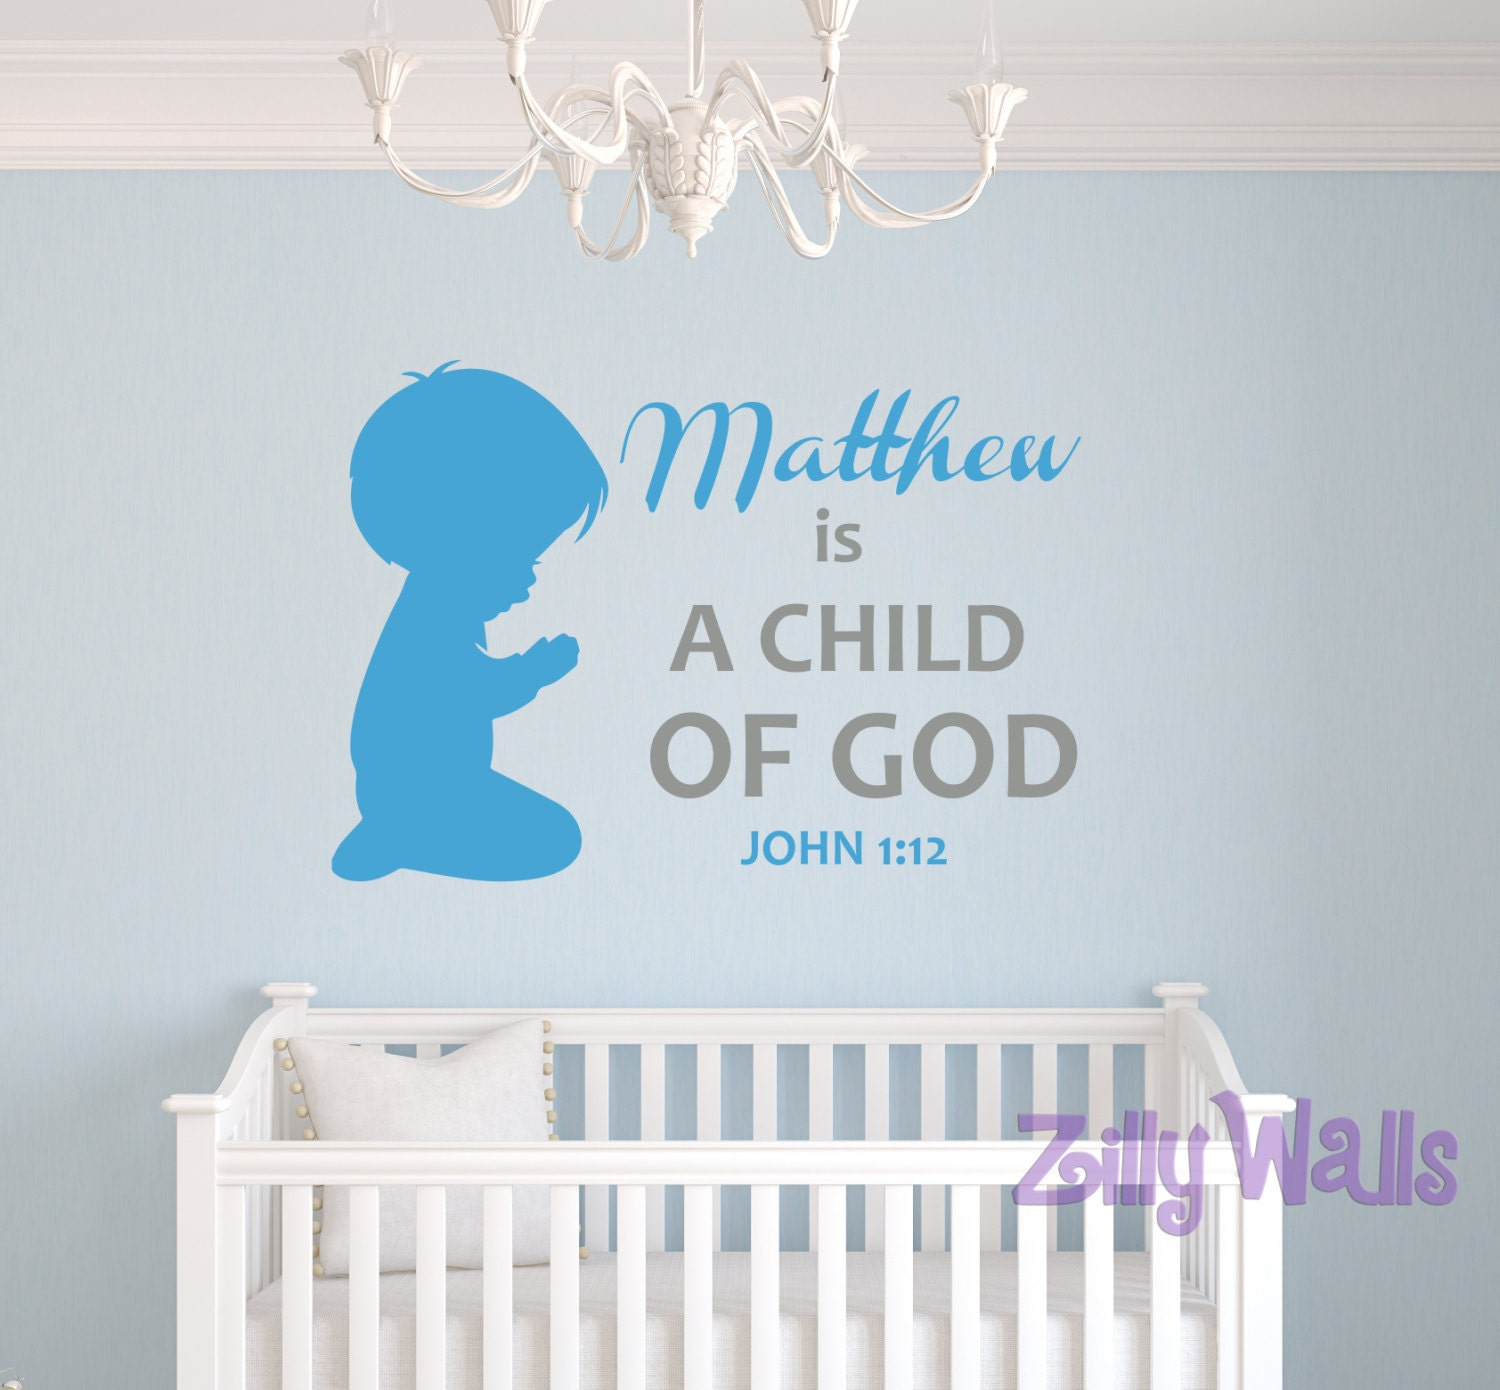 Christian Wall Decor For Nursery : Vinyl wall scripture decal christian nursery decor